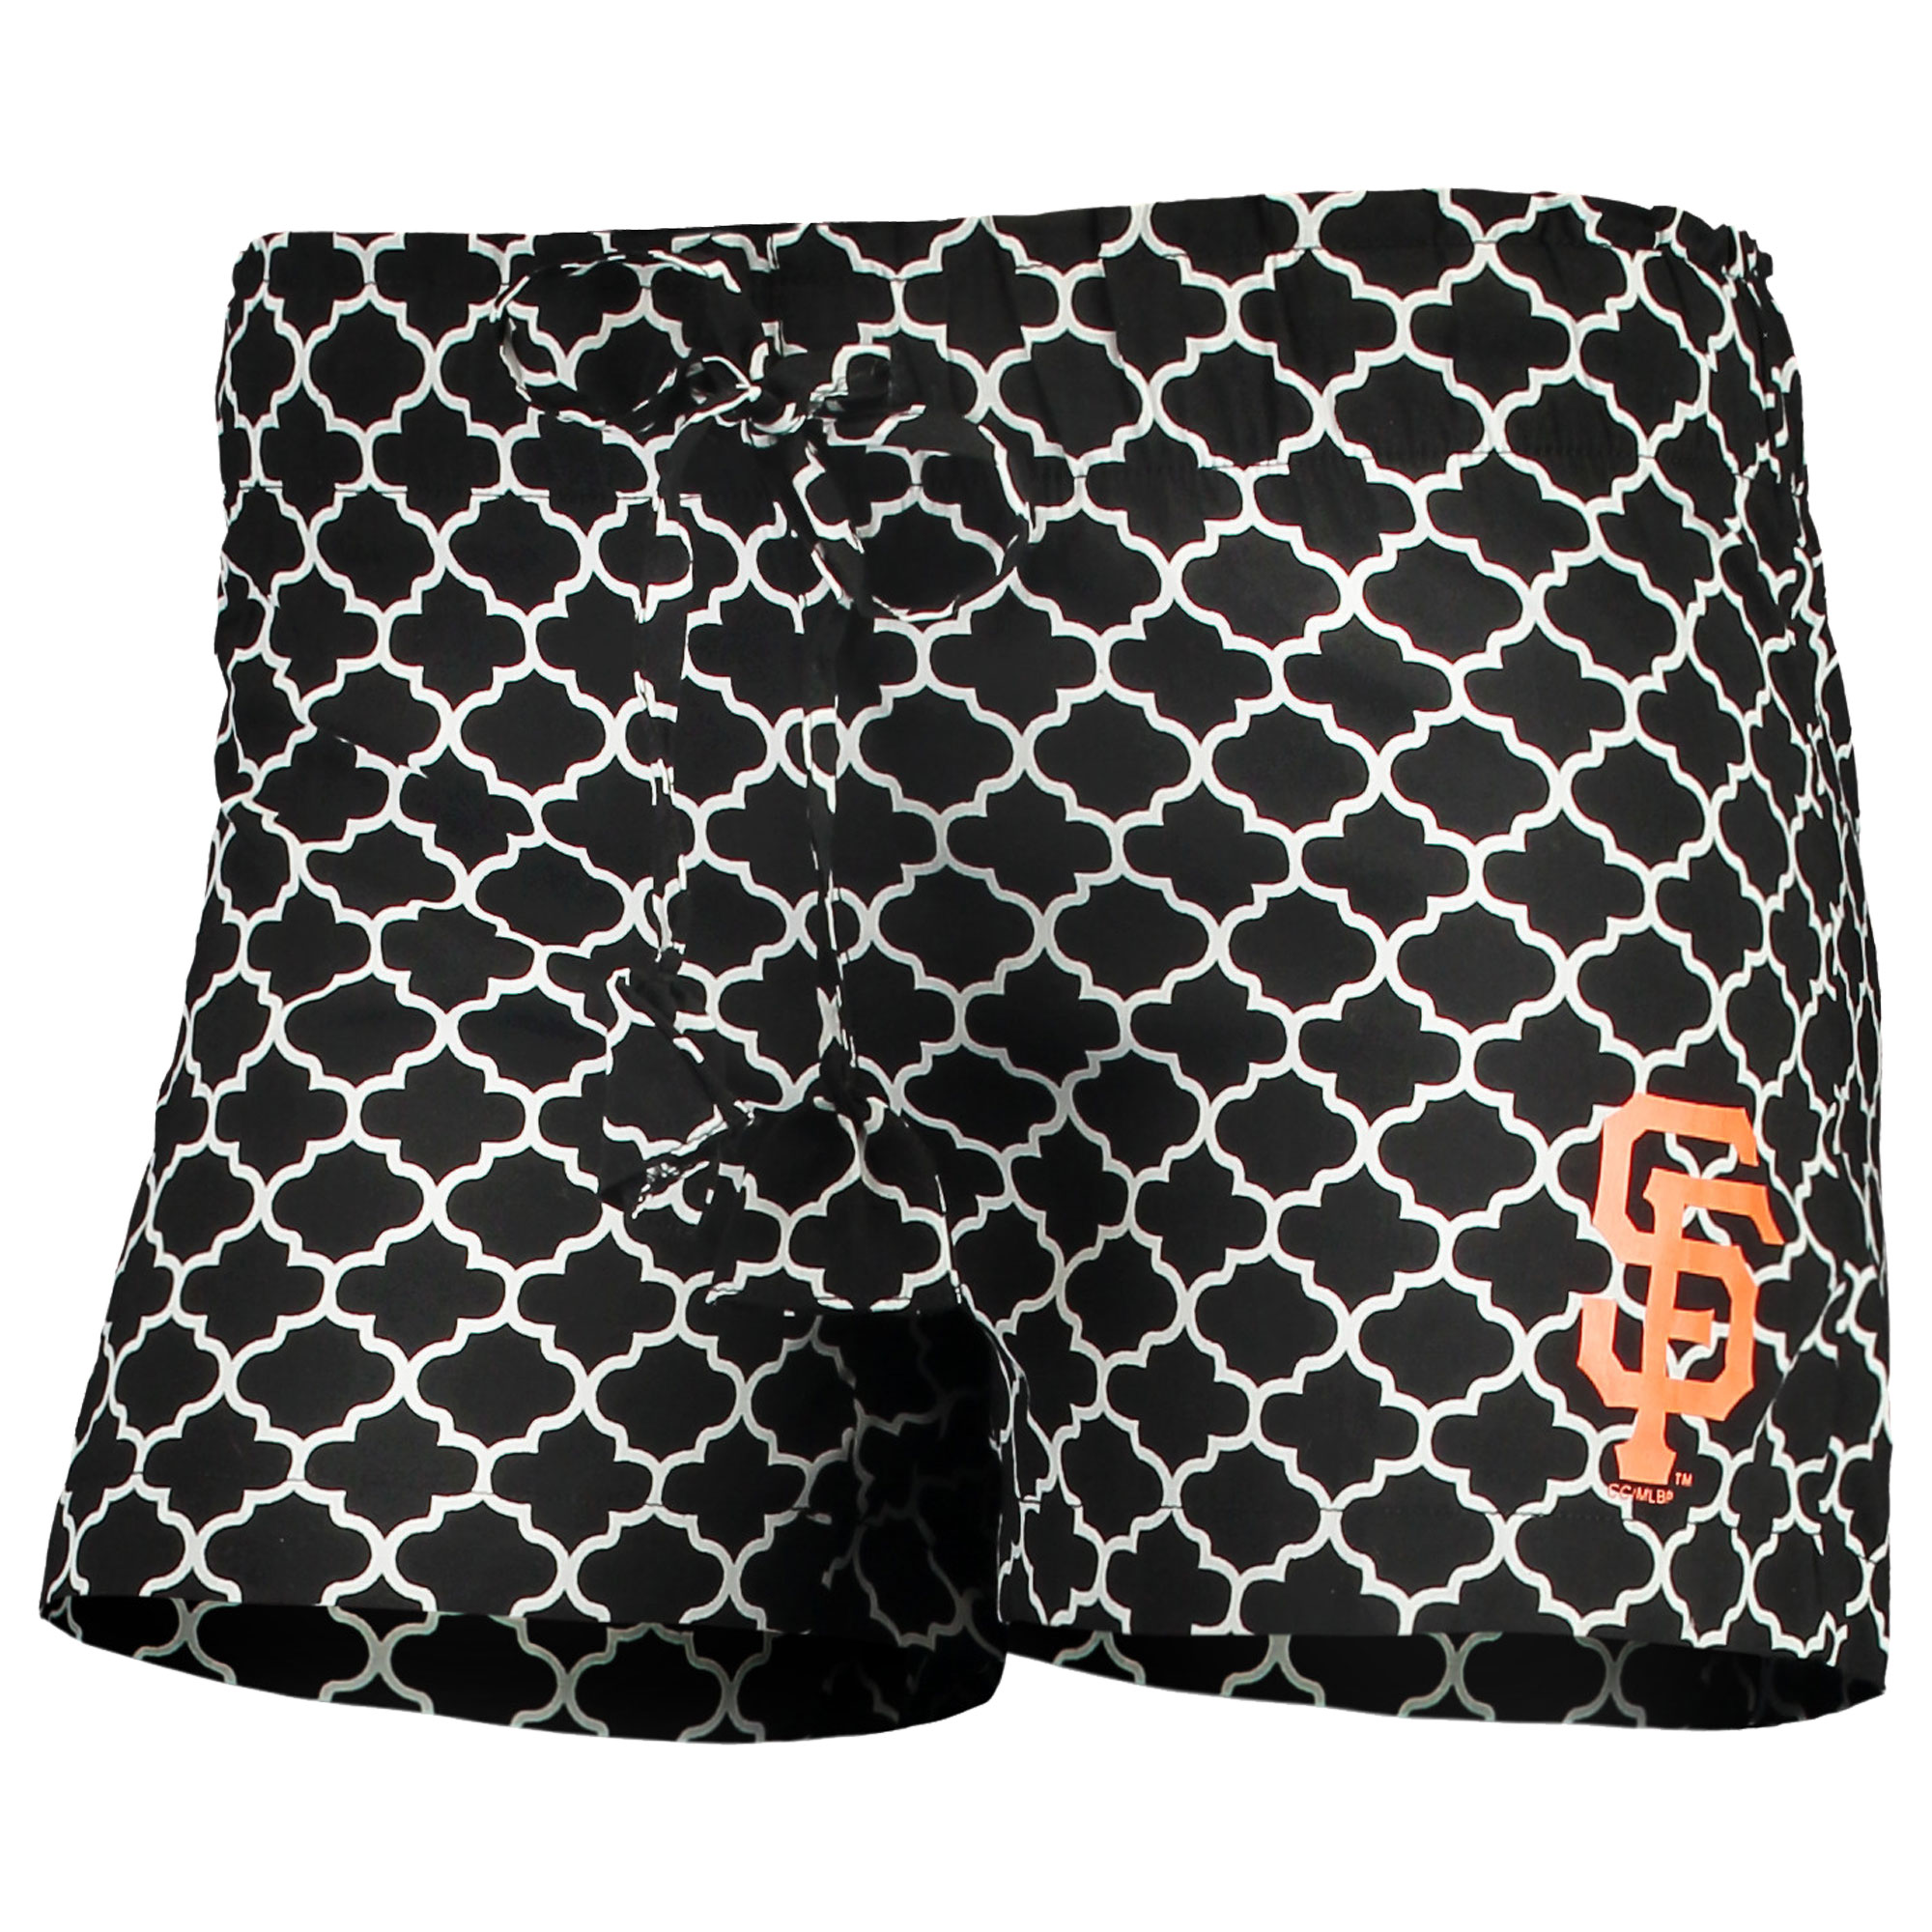 San Francisco Giants Concepts Sport Women's Slumber Sleep Shorts - Black/White